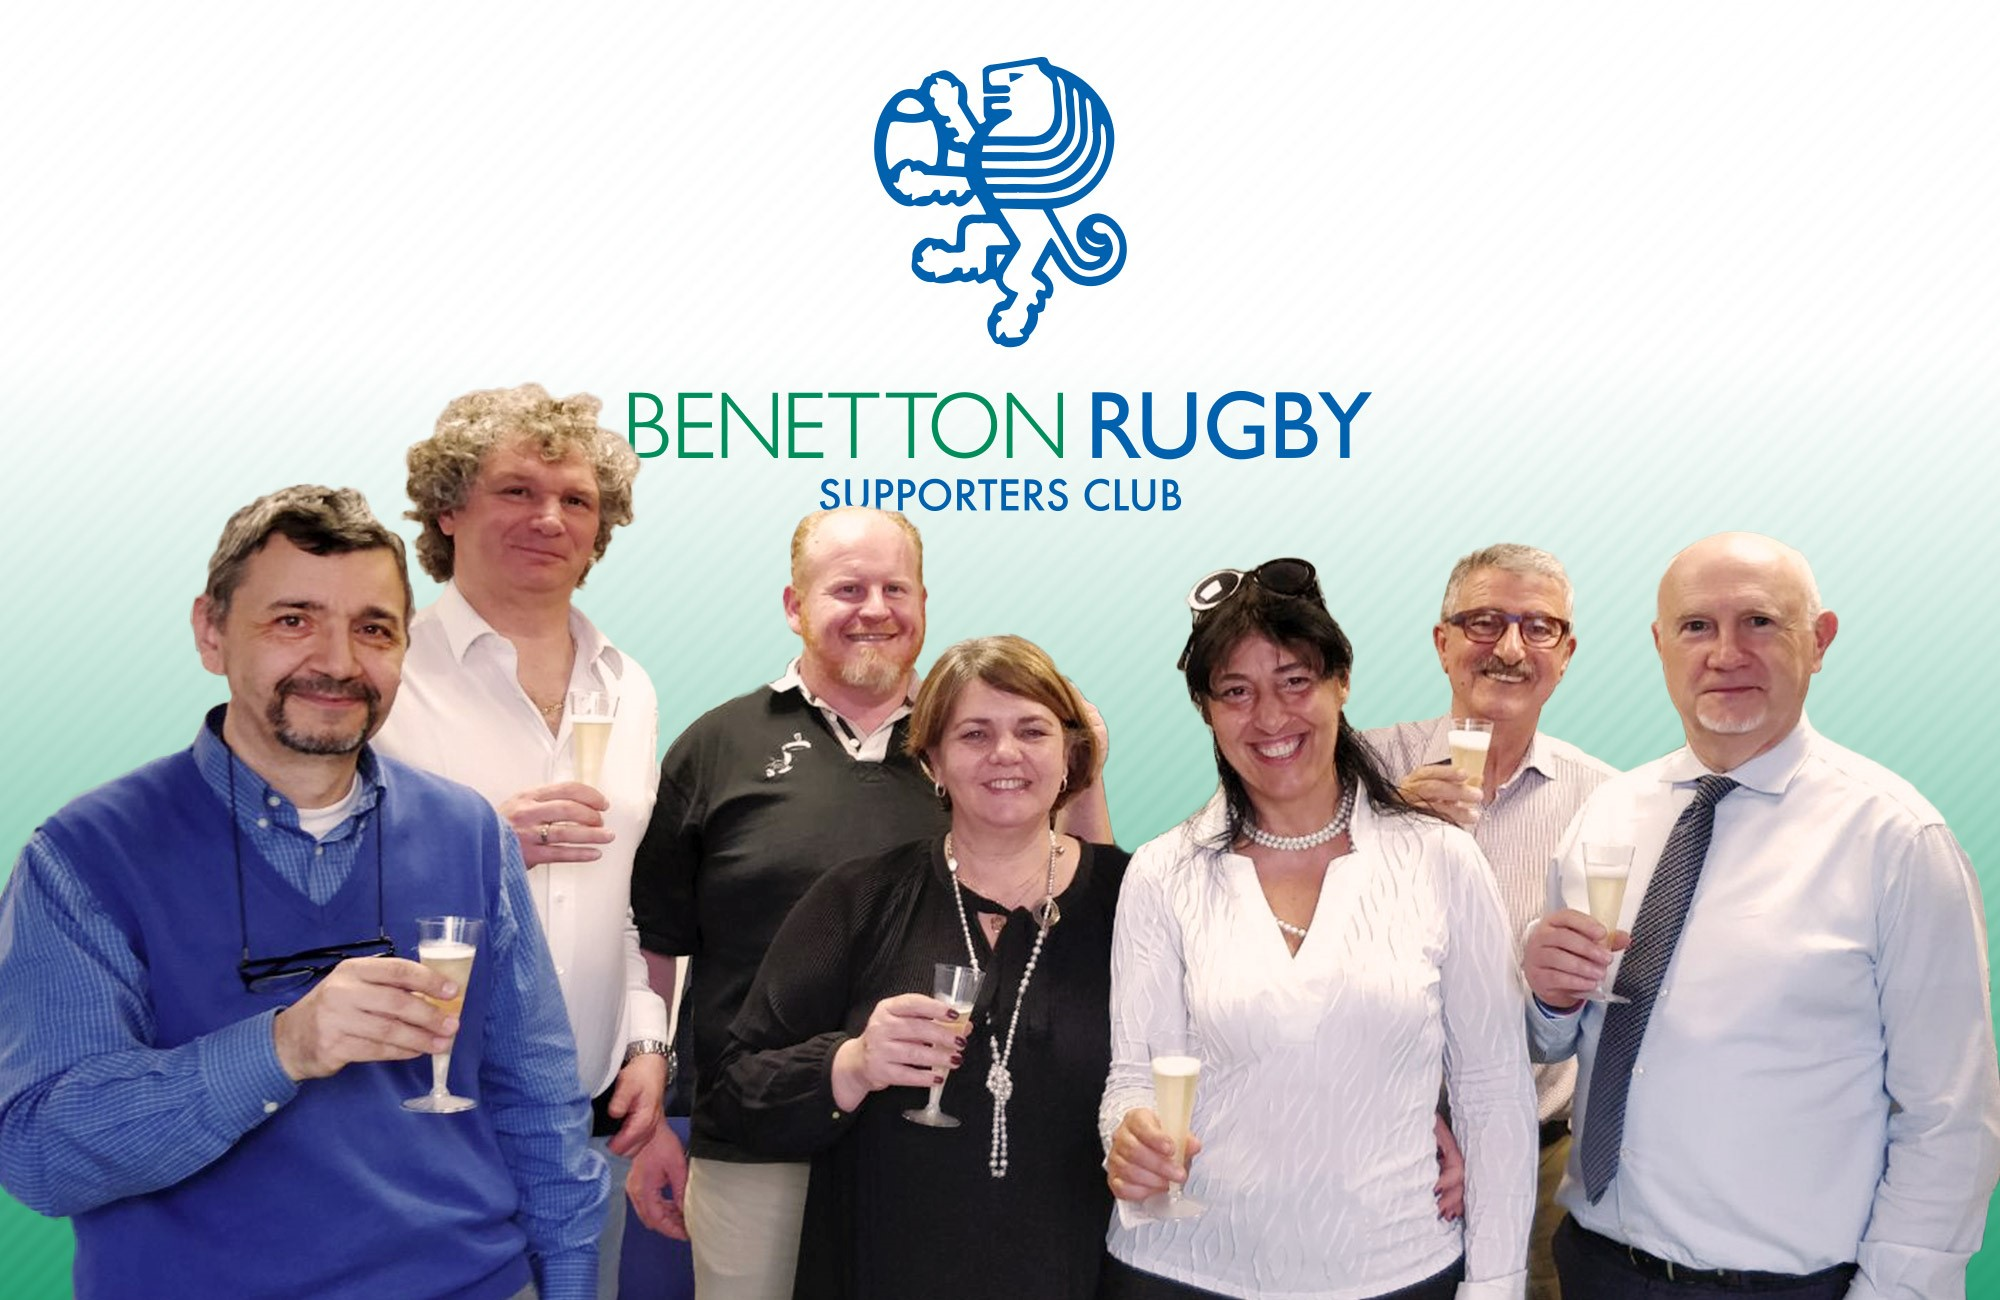 NASCE IL BENETTON RUGBY SUPPORTERS CLUB